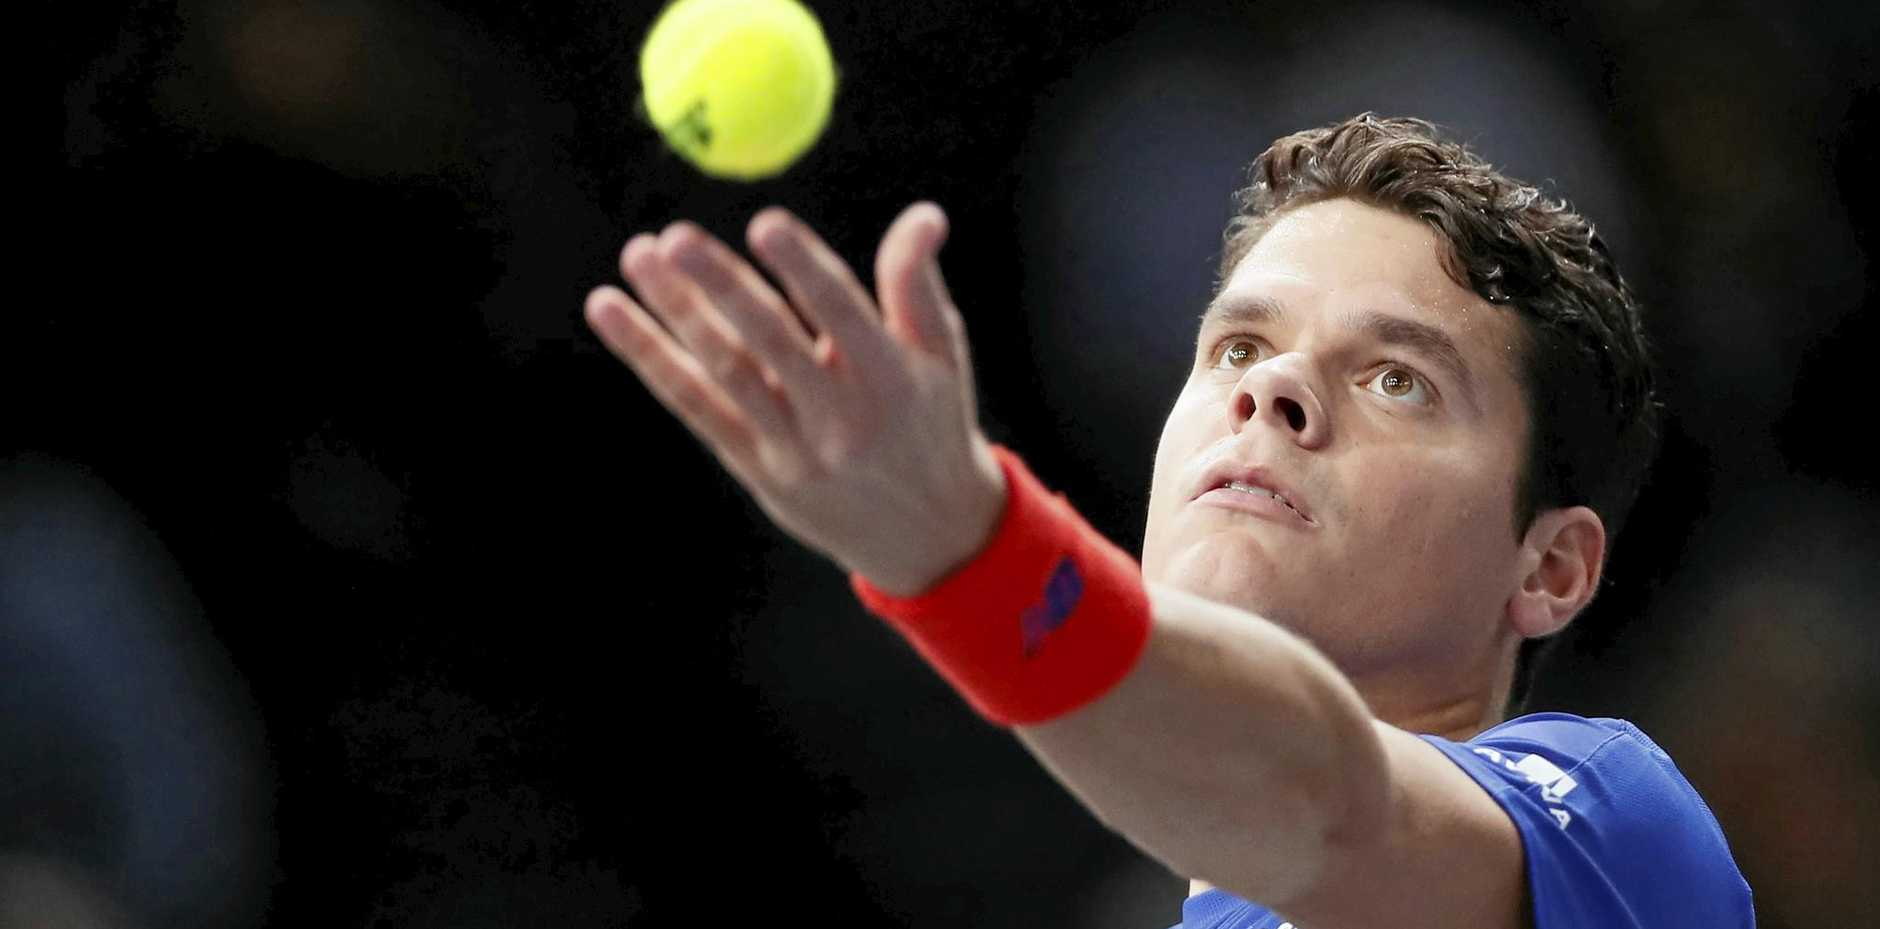 Milos Raonic of Canada winds up to serve.